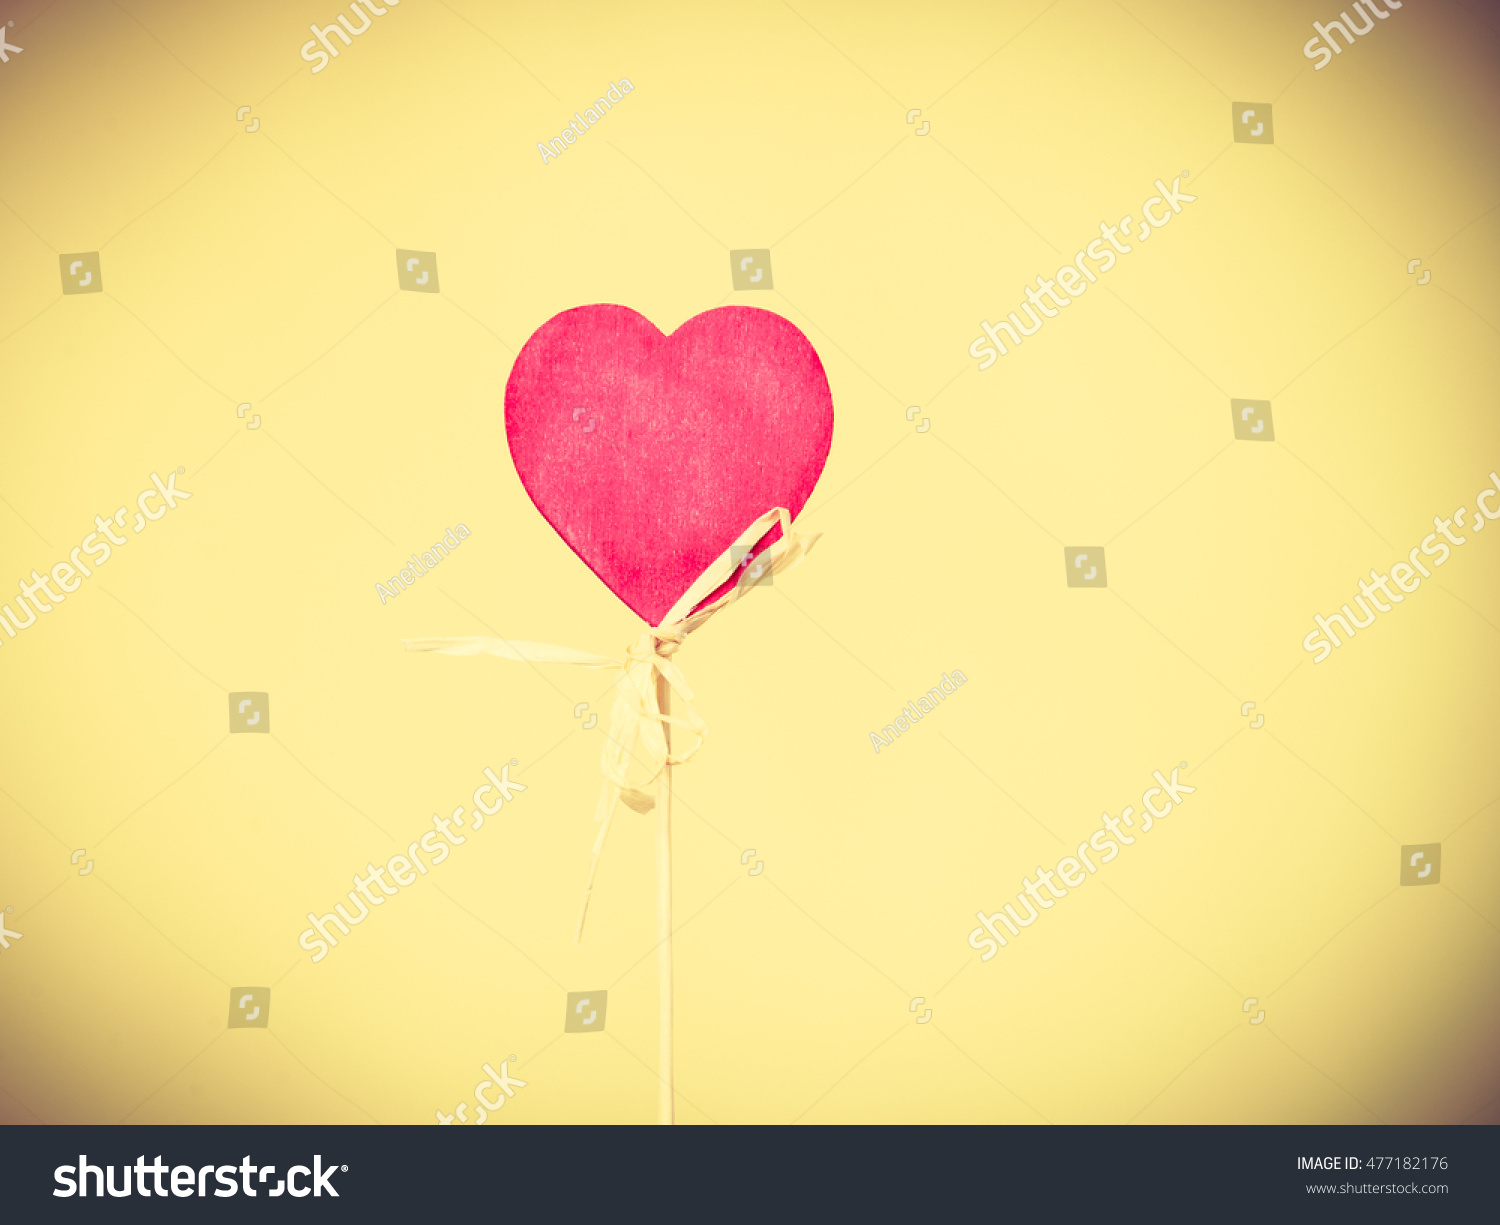 Royalty Free Symbolism Feelings Valentines Romance 477182176 Stock